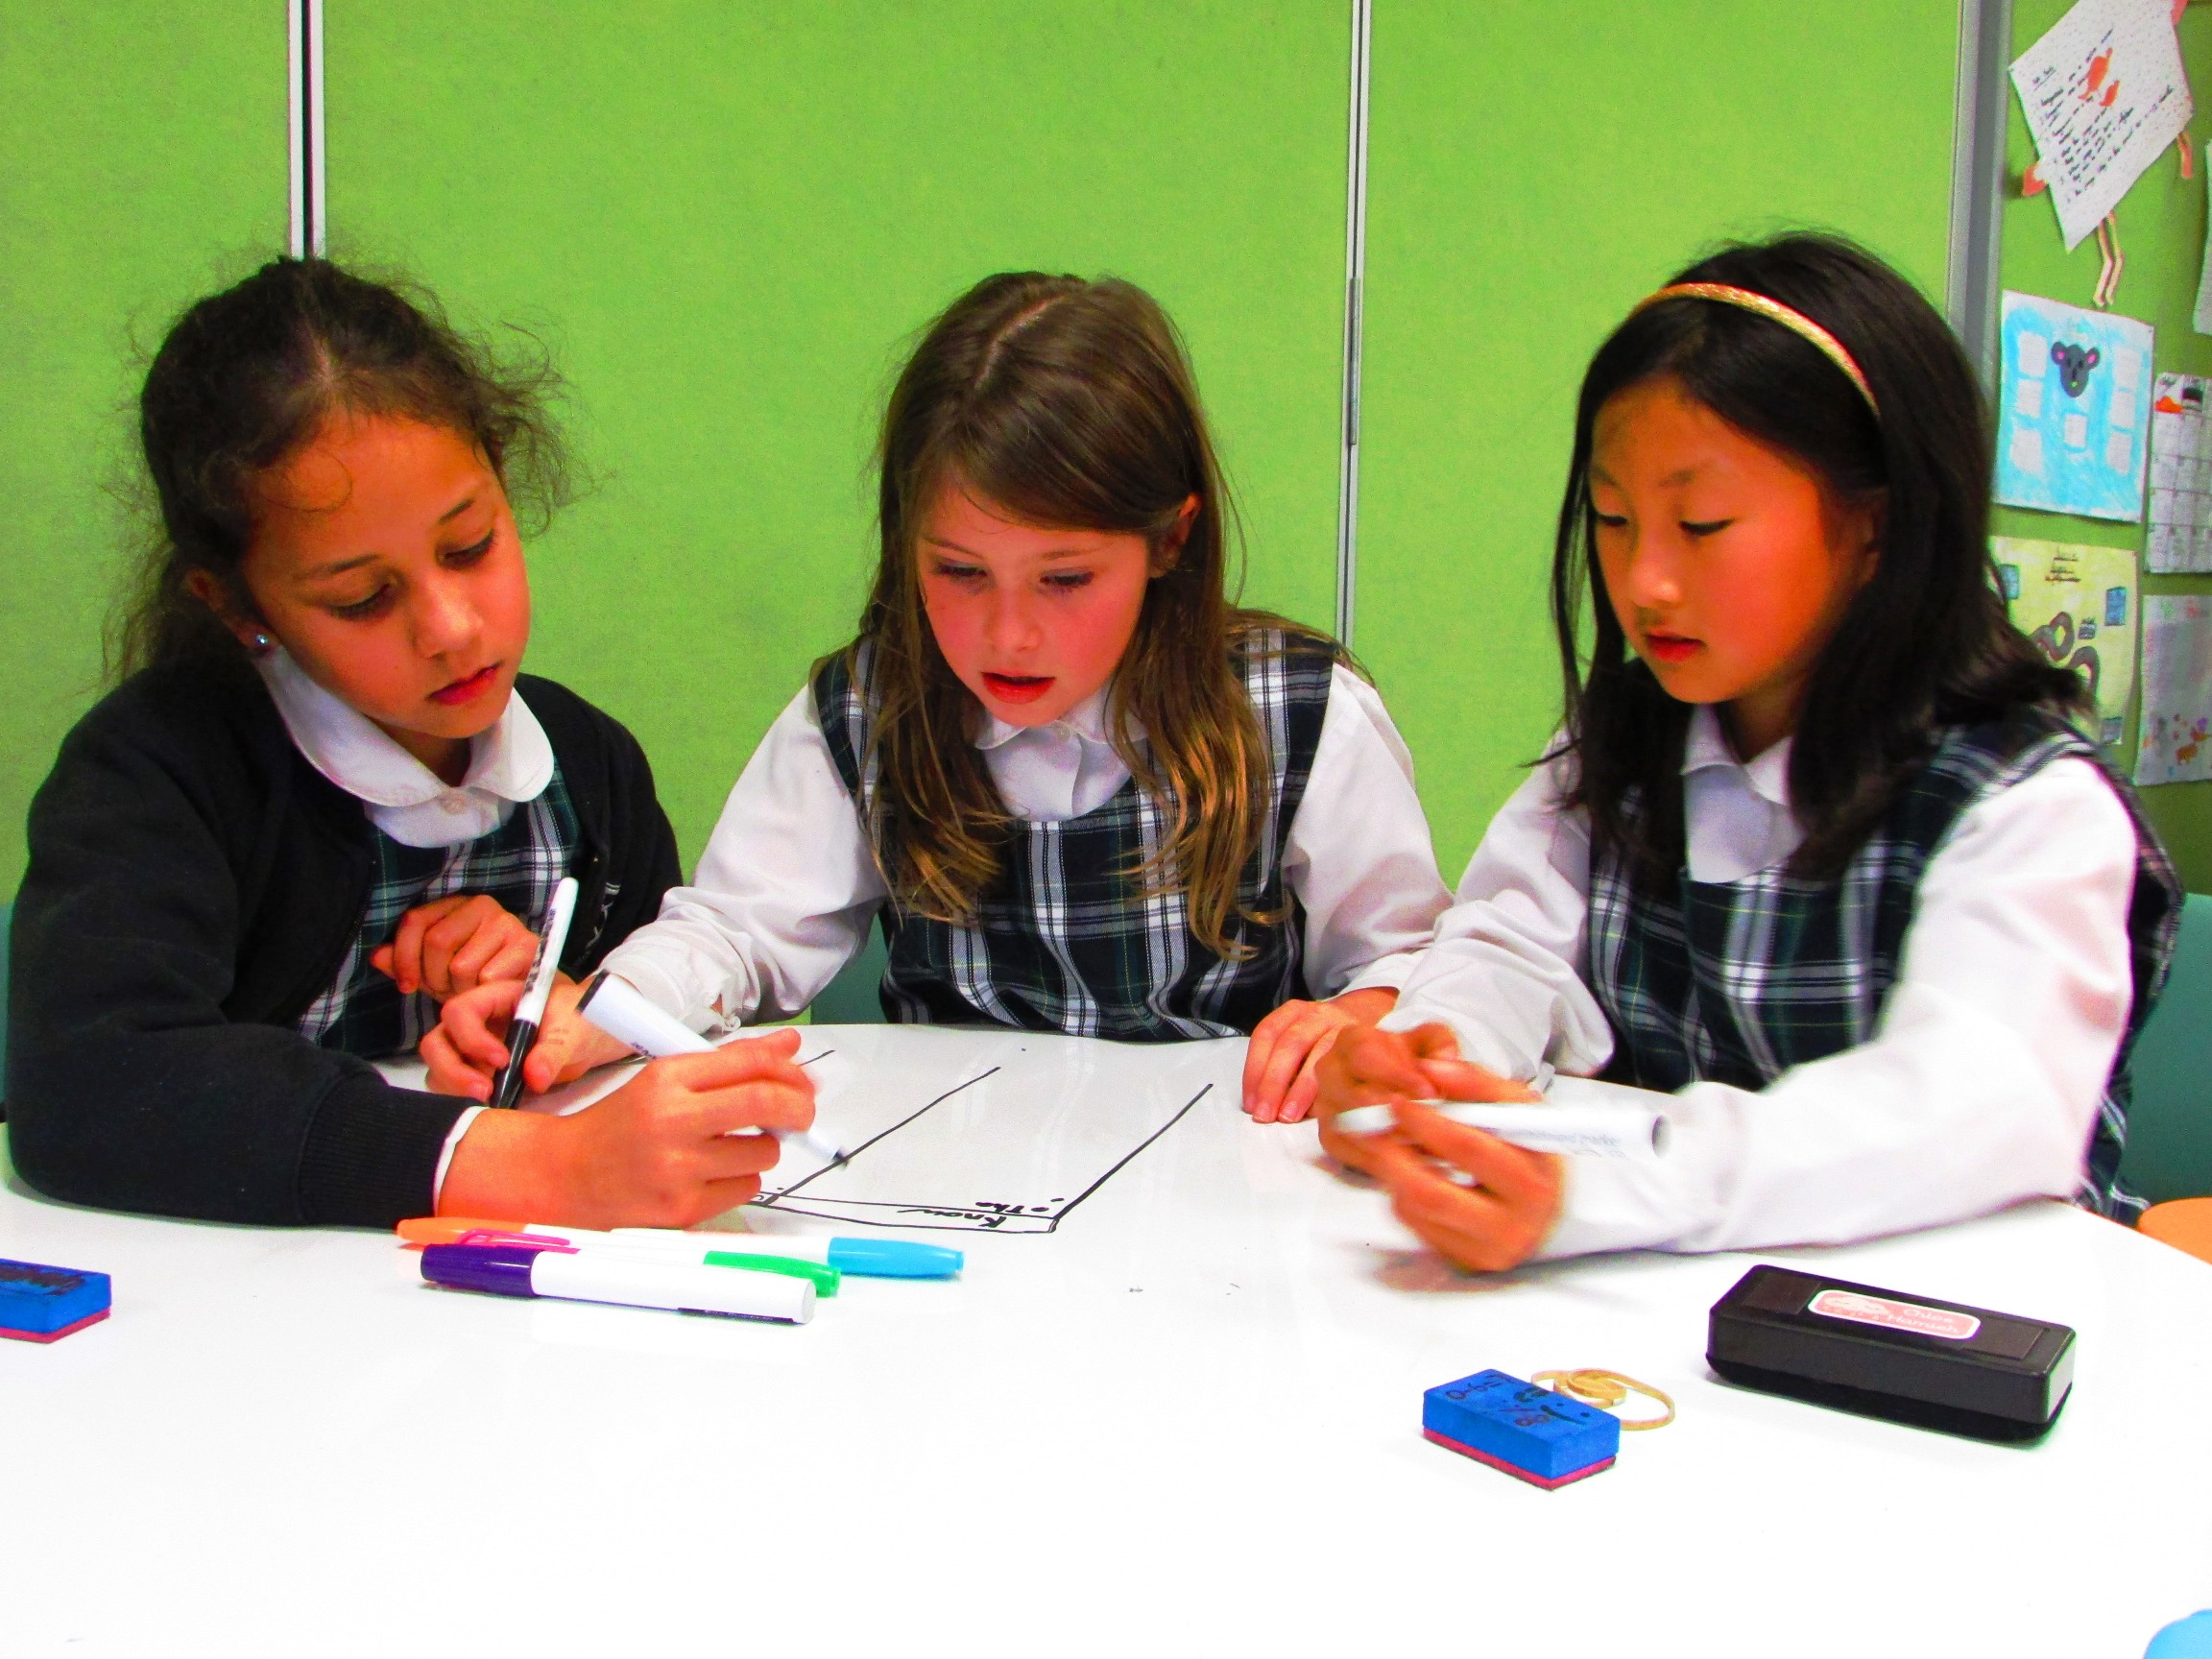 A group of three students working out a problem on a whiteboard table.